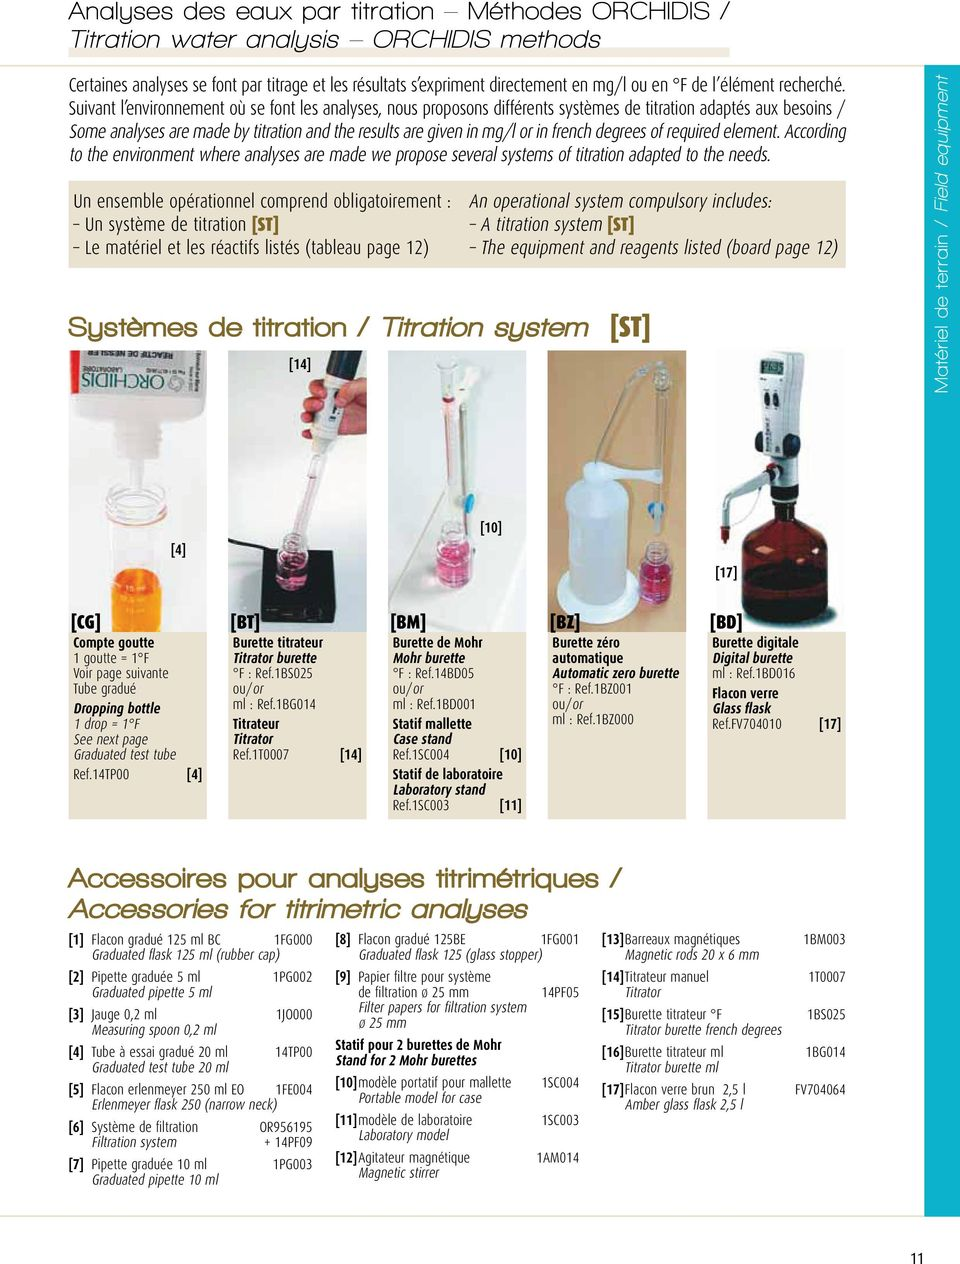 french degrees of required element. According to the environment where analyses are made we propose several systems of titration adapted to the needs.